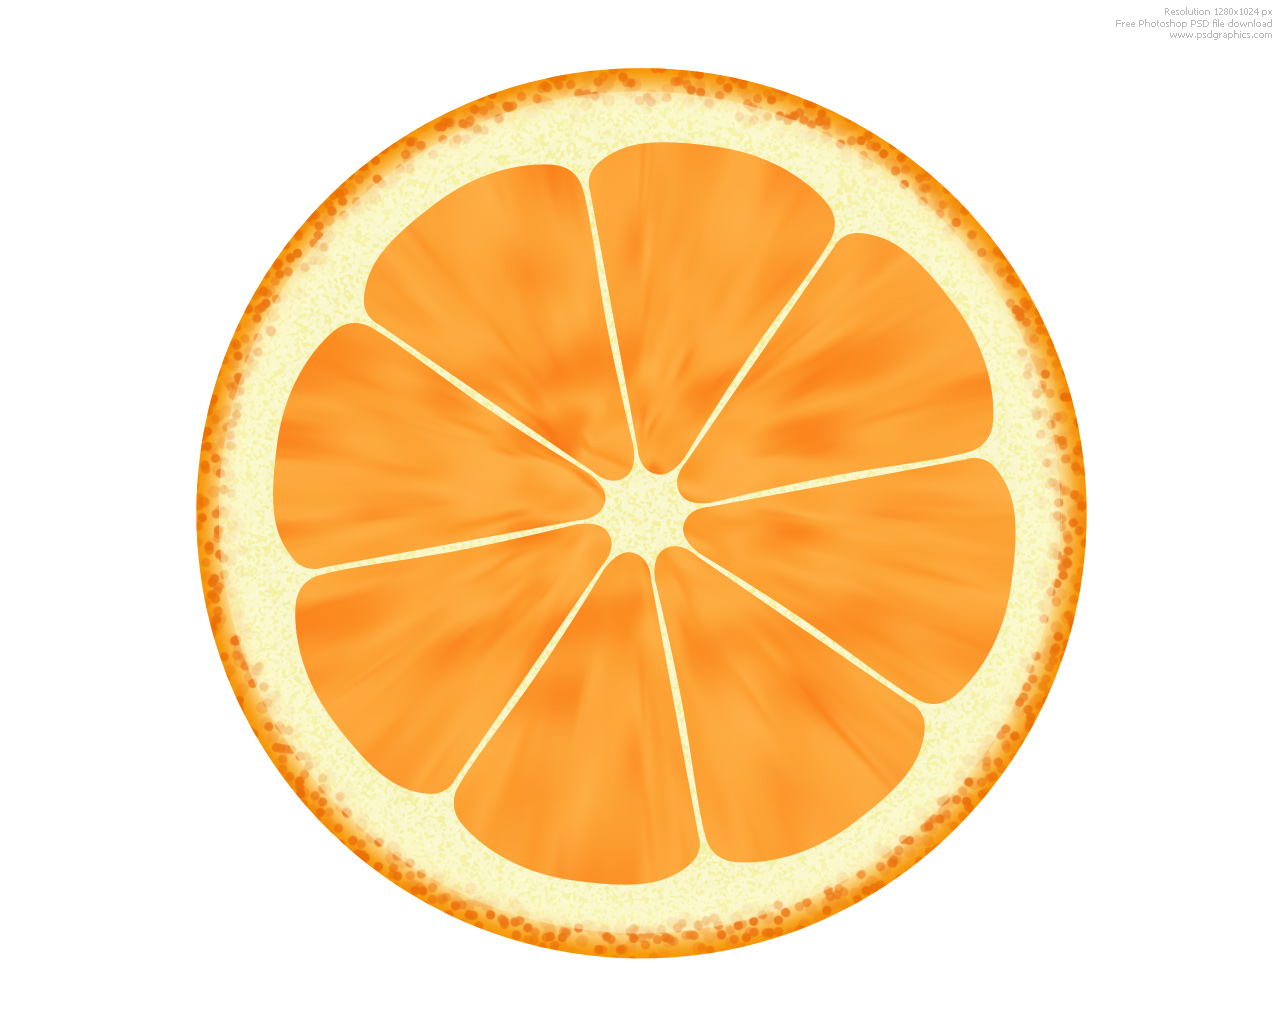 1280x1024 Orange (Fruit) Clipart Sliced